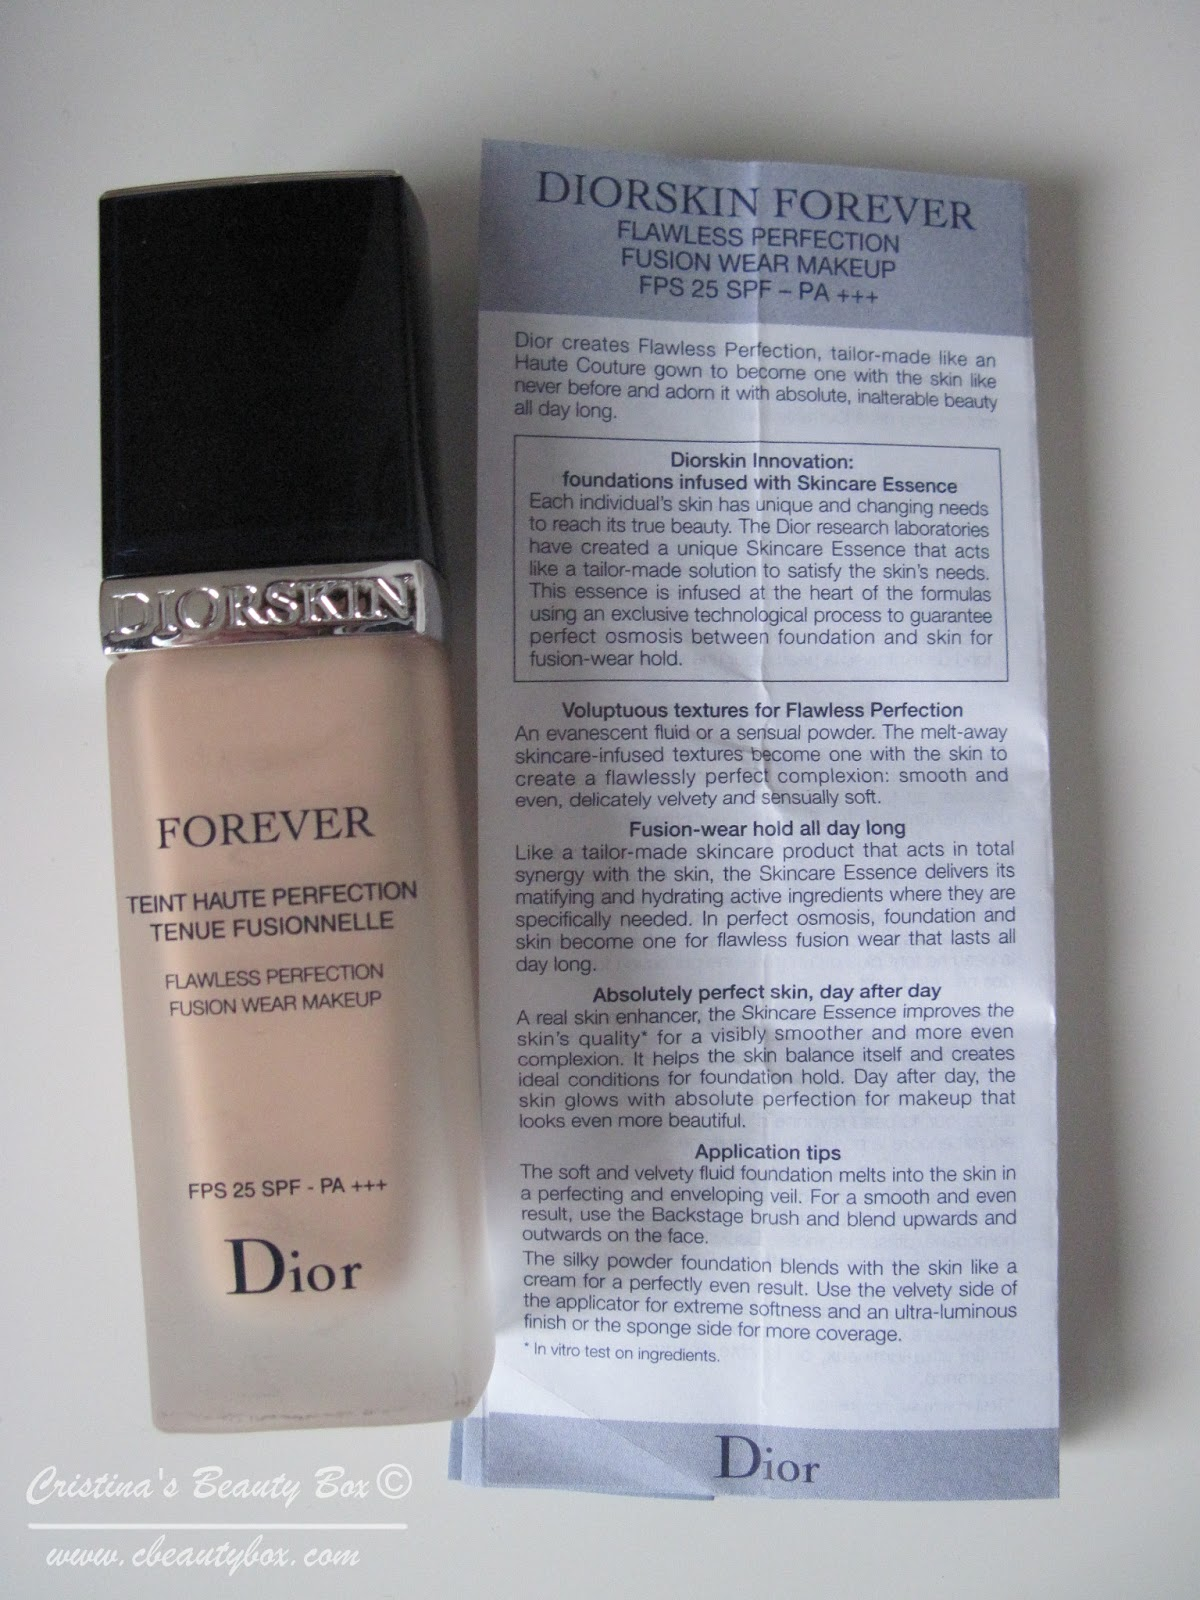 dior diorskin forever flawless foundation review cristina elena. Black Bedroom Furniture Sets. Home Design Ideas